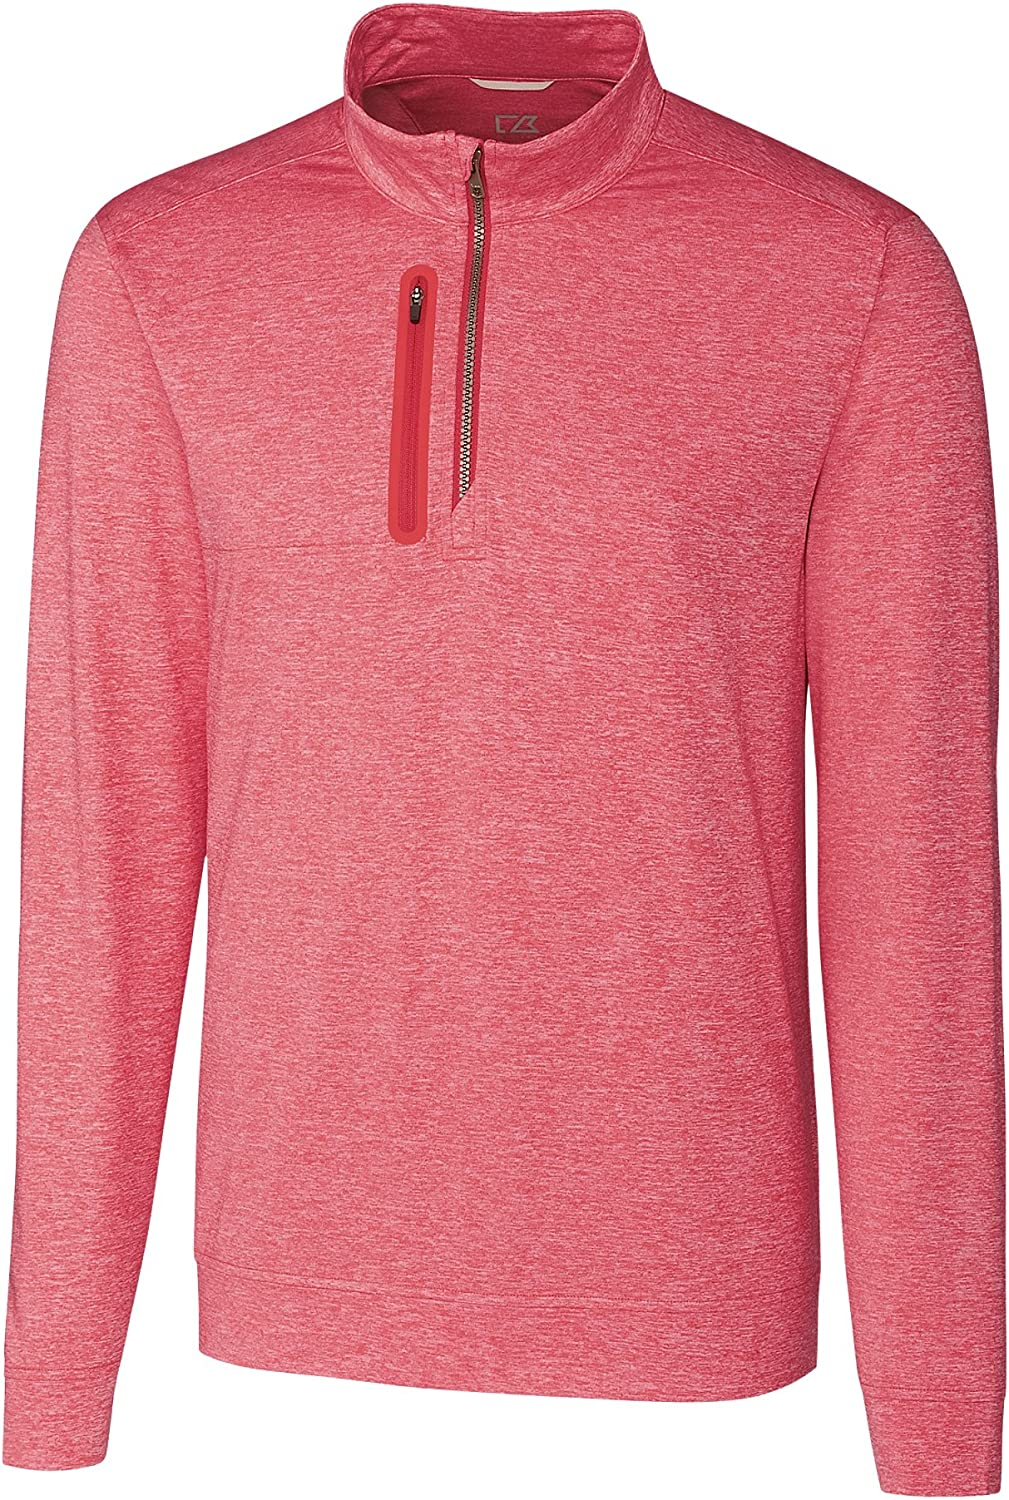 Cutter & Buck Big and Tall Stealth 1/2-Zip Pullover Cardinal Red